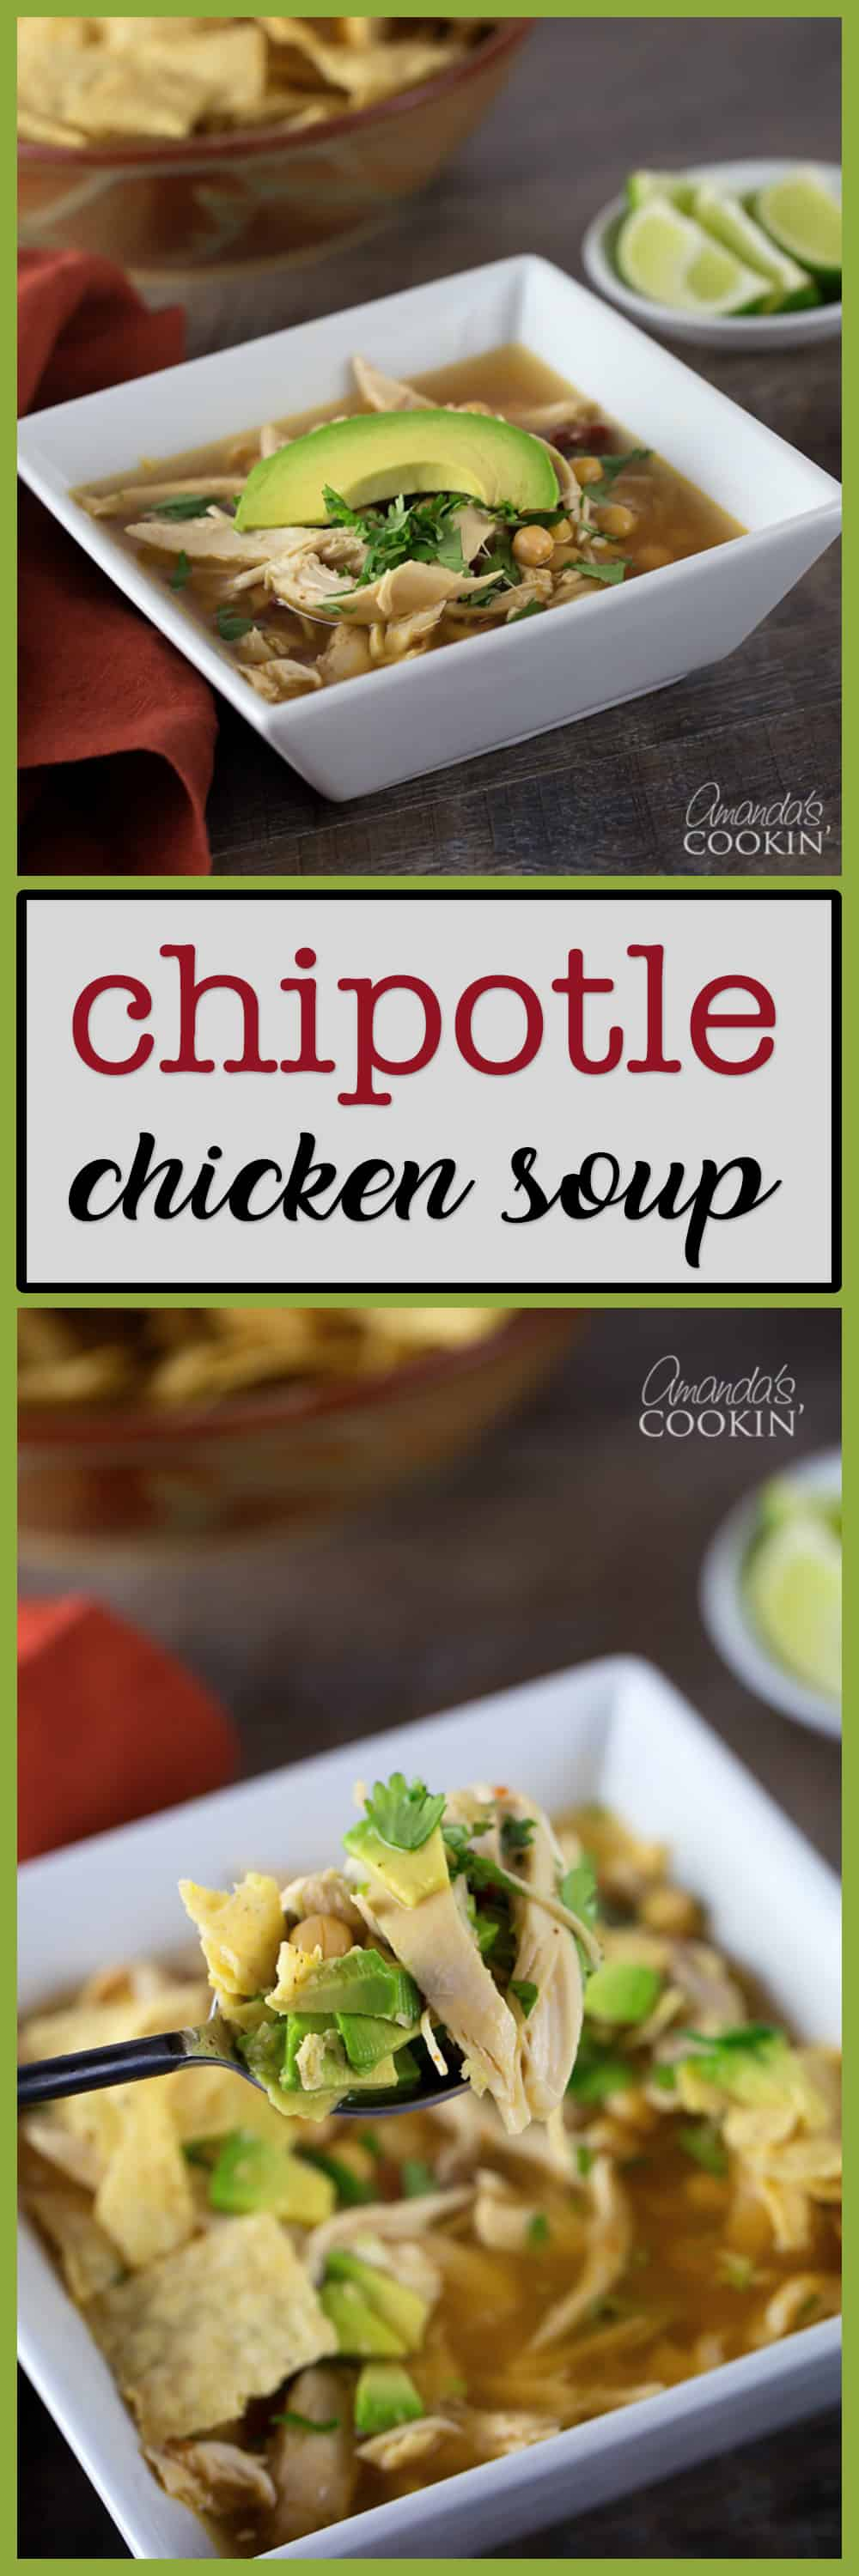 Photos of chipotle chicken soup in a white bowl.